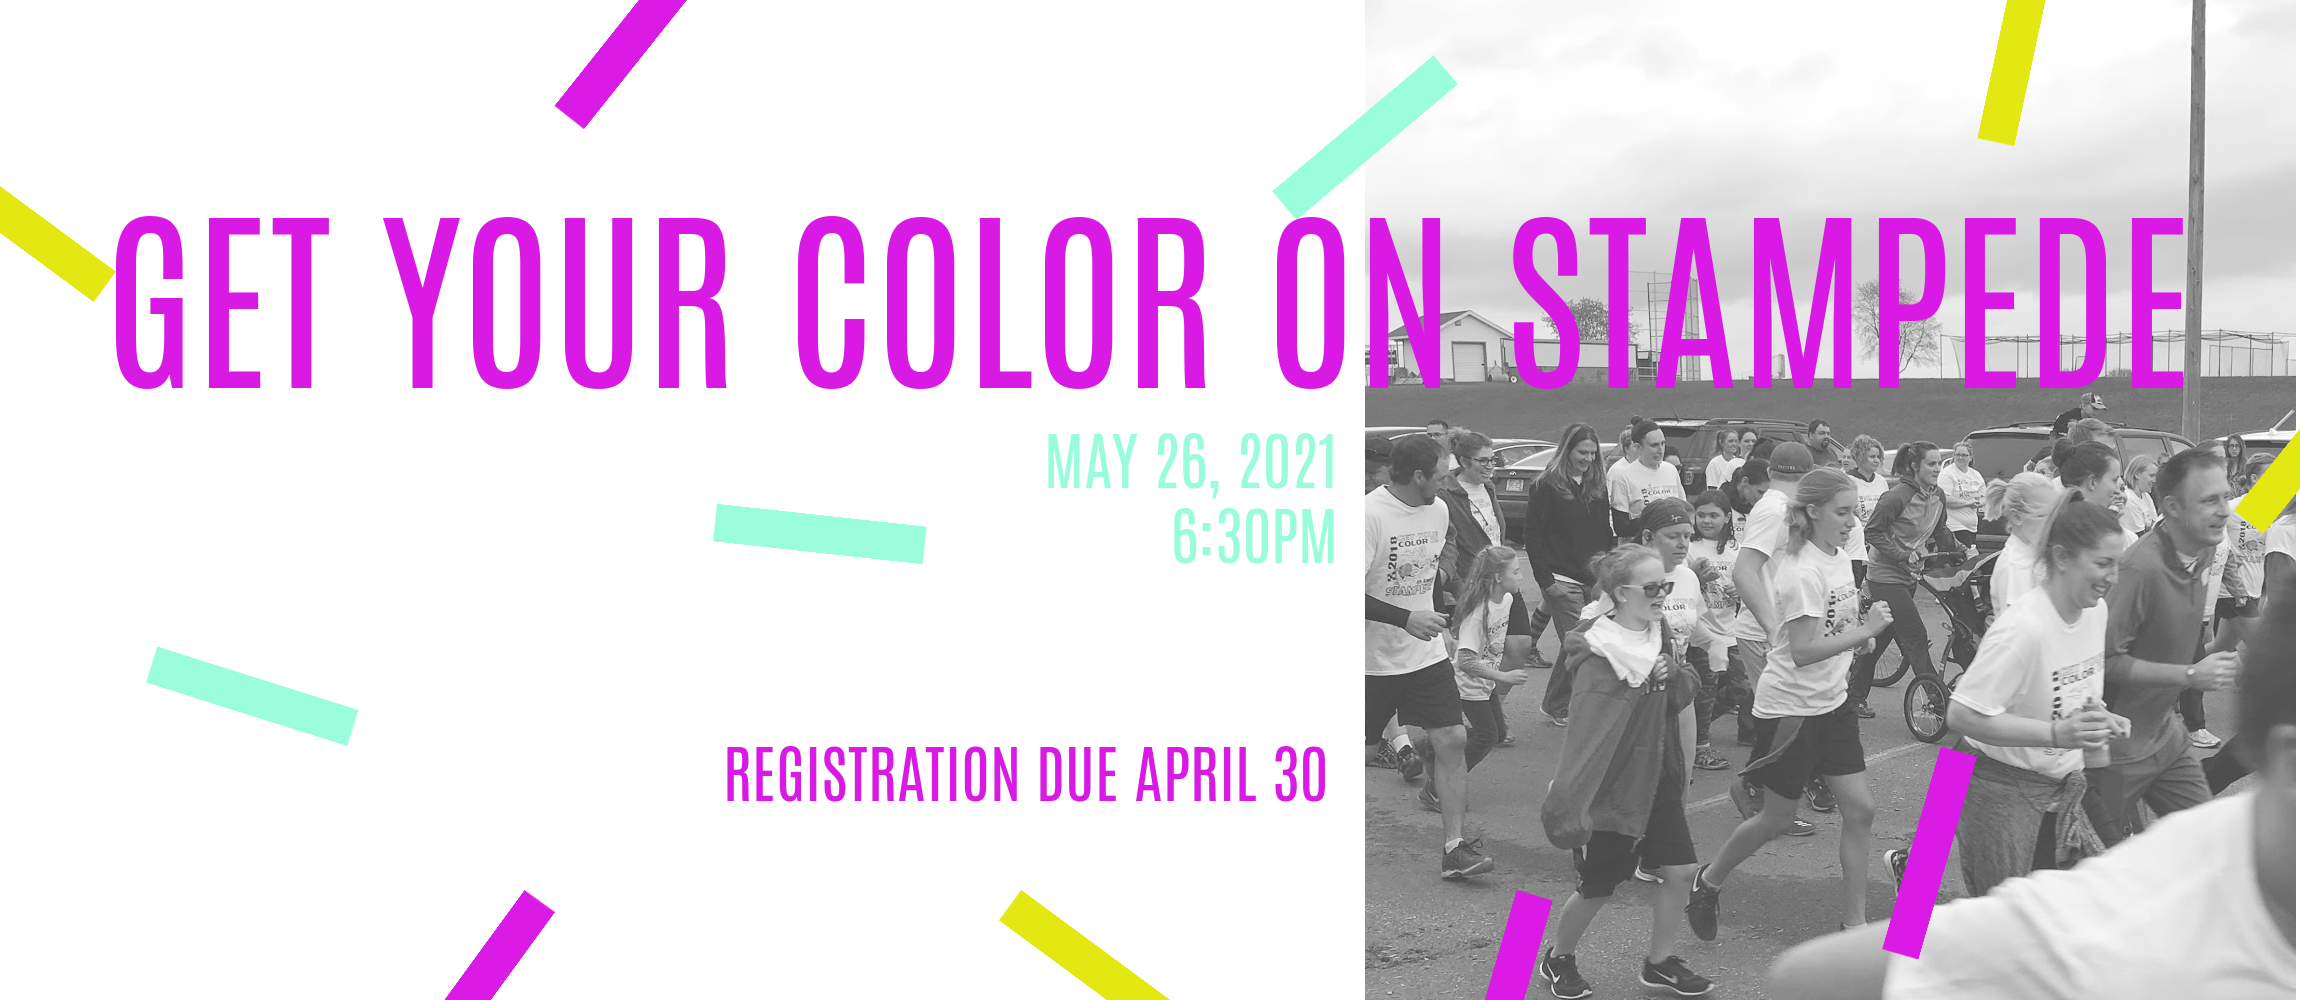 color run shows a group running